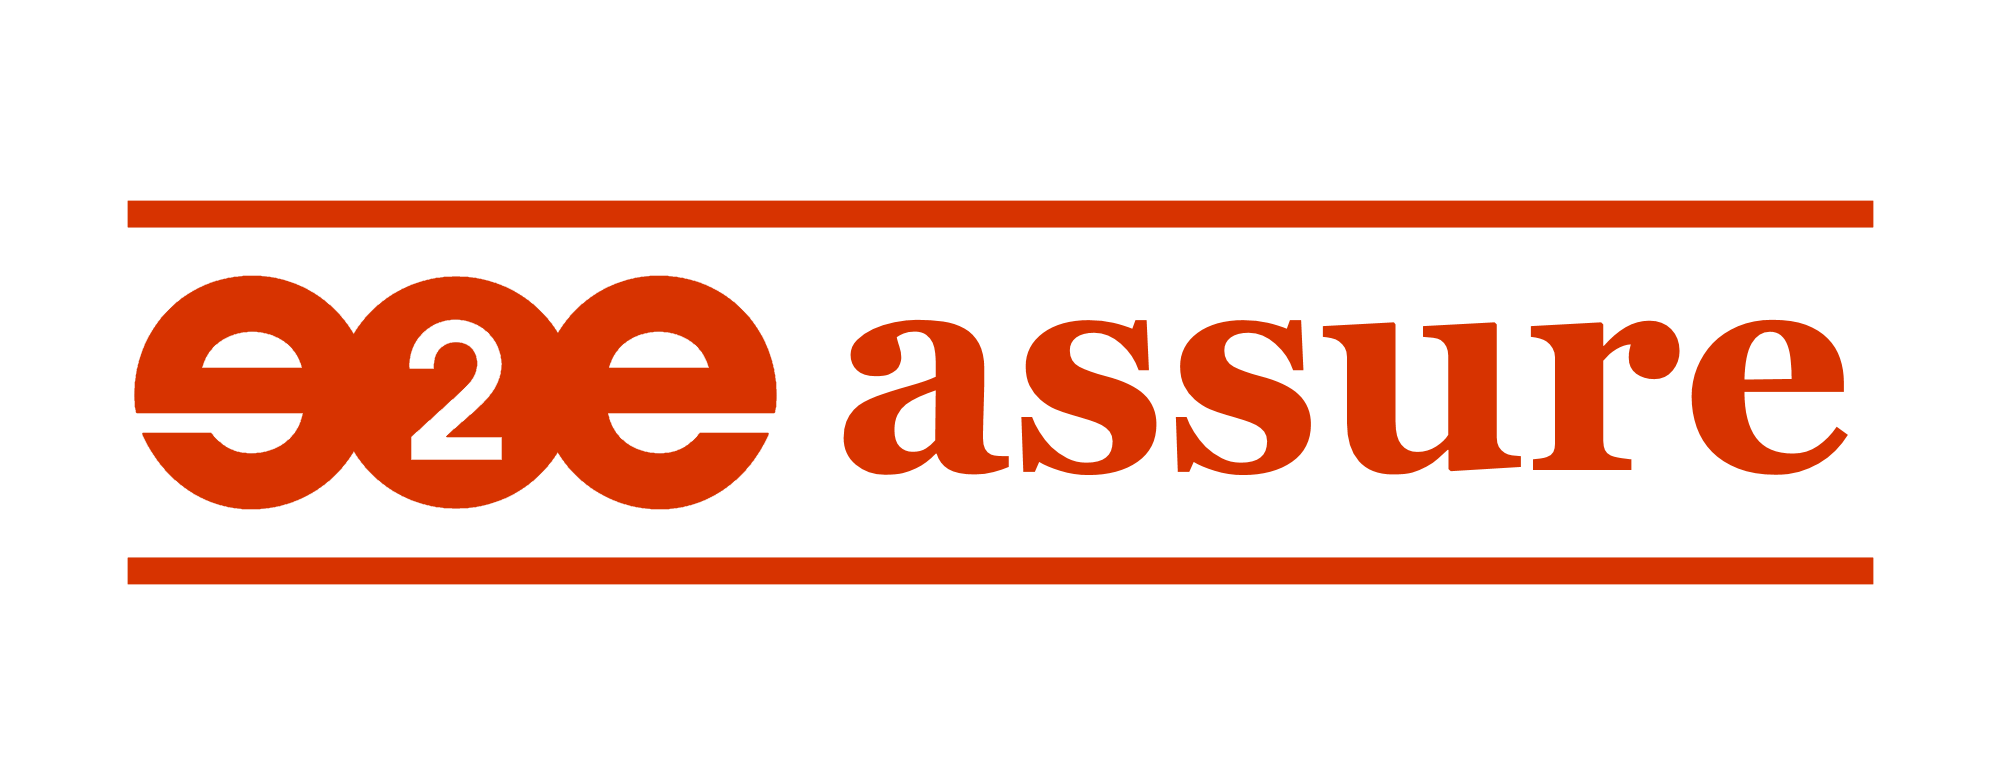 e2e-assure hori-orange - High Res